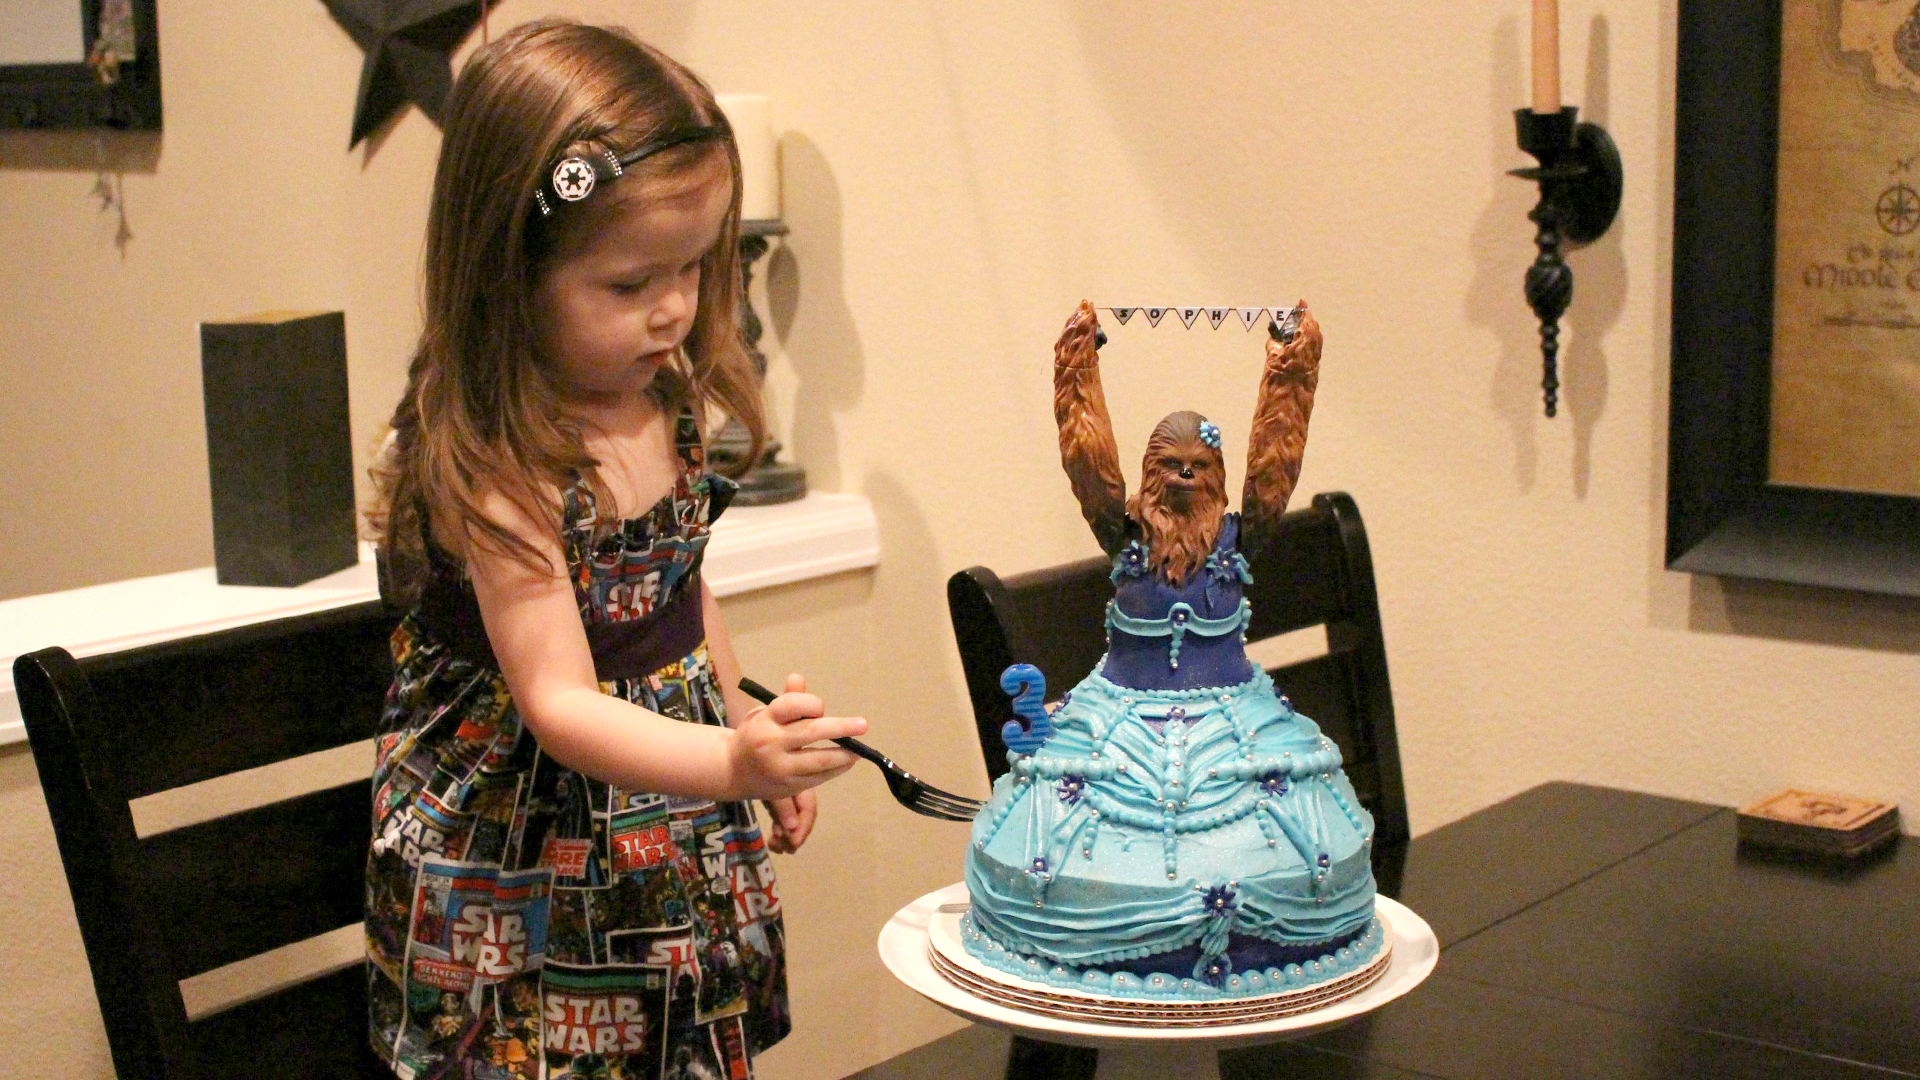 Princess Chewbacca 3 Year Old Celebrates Birthday With